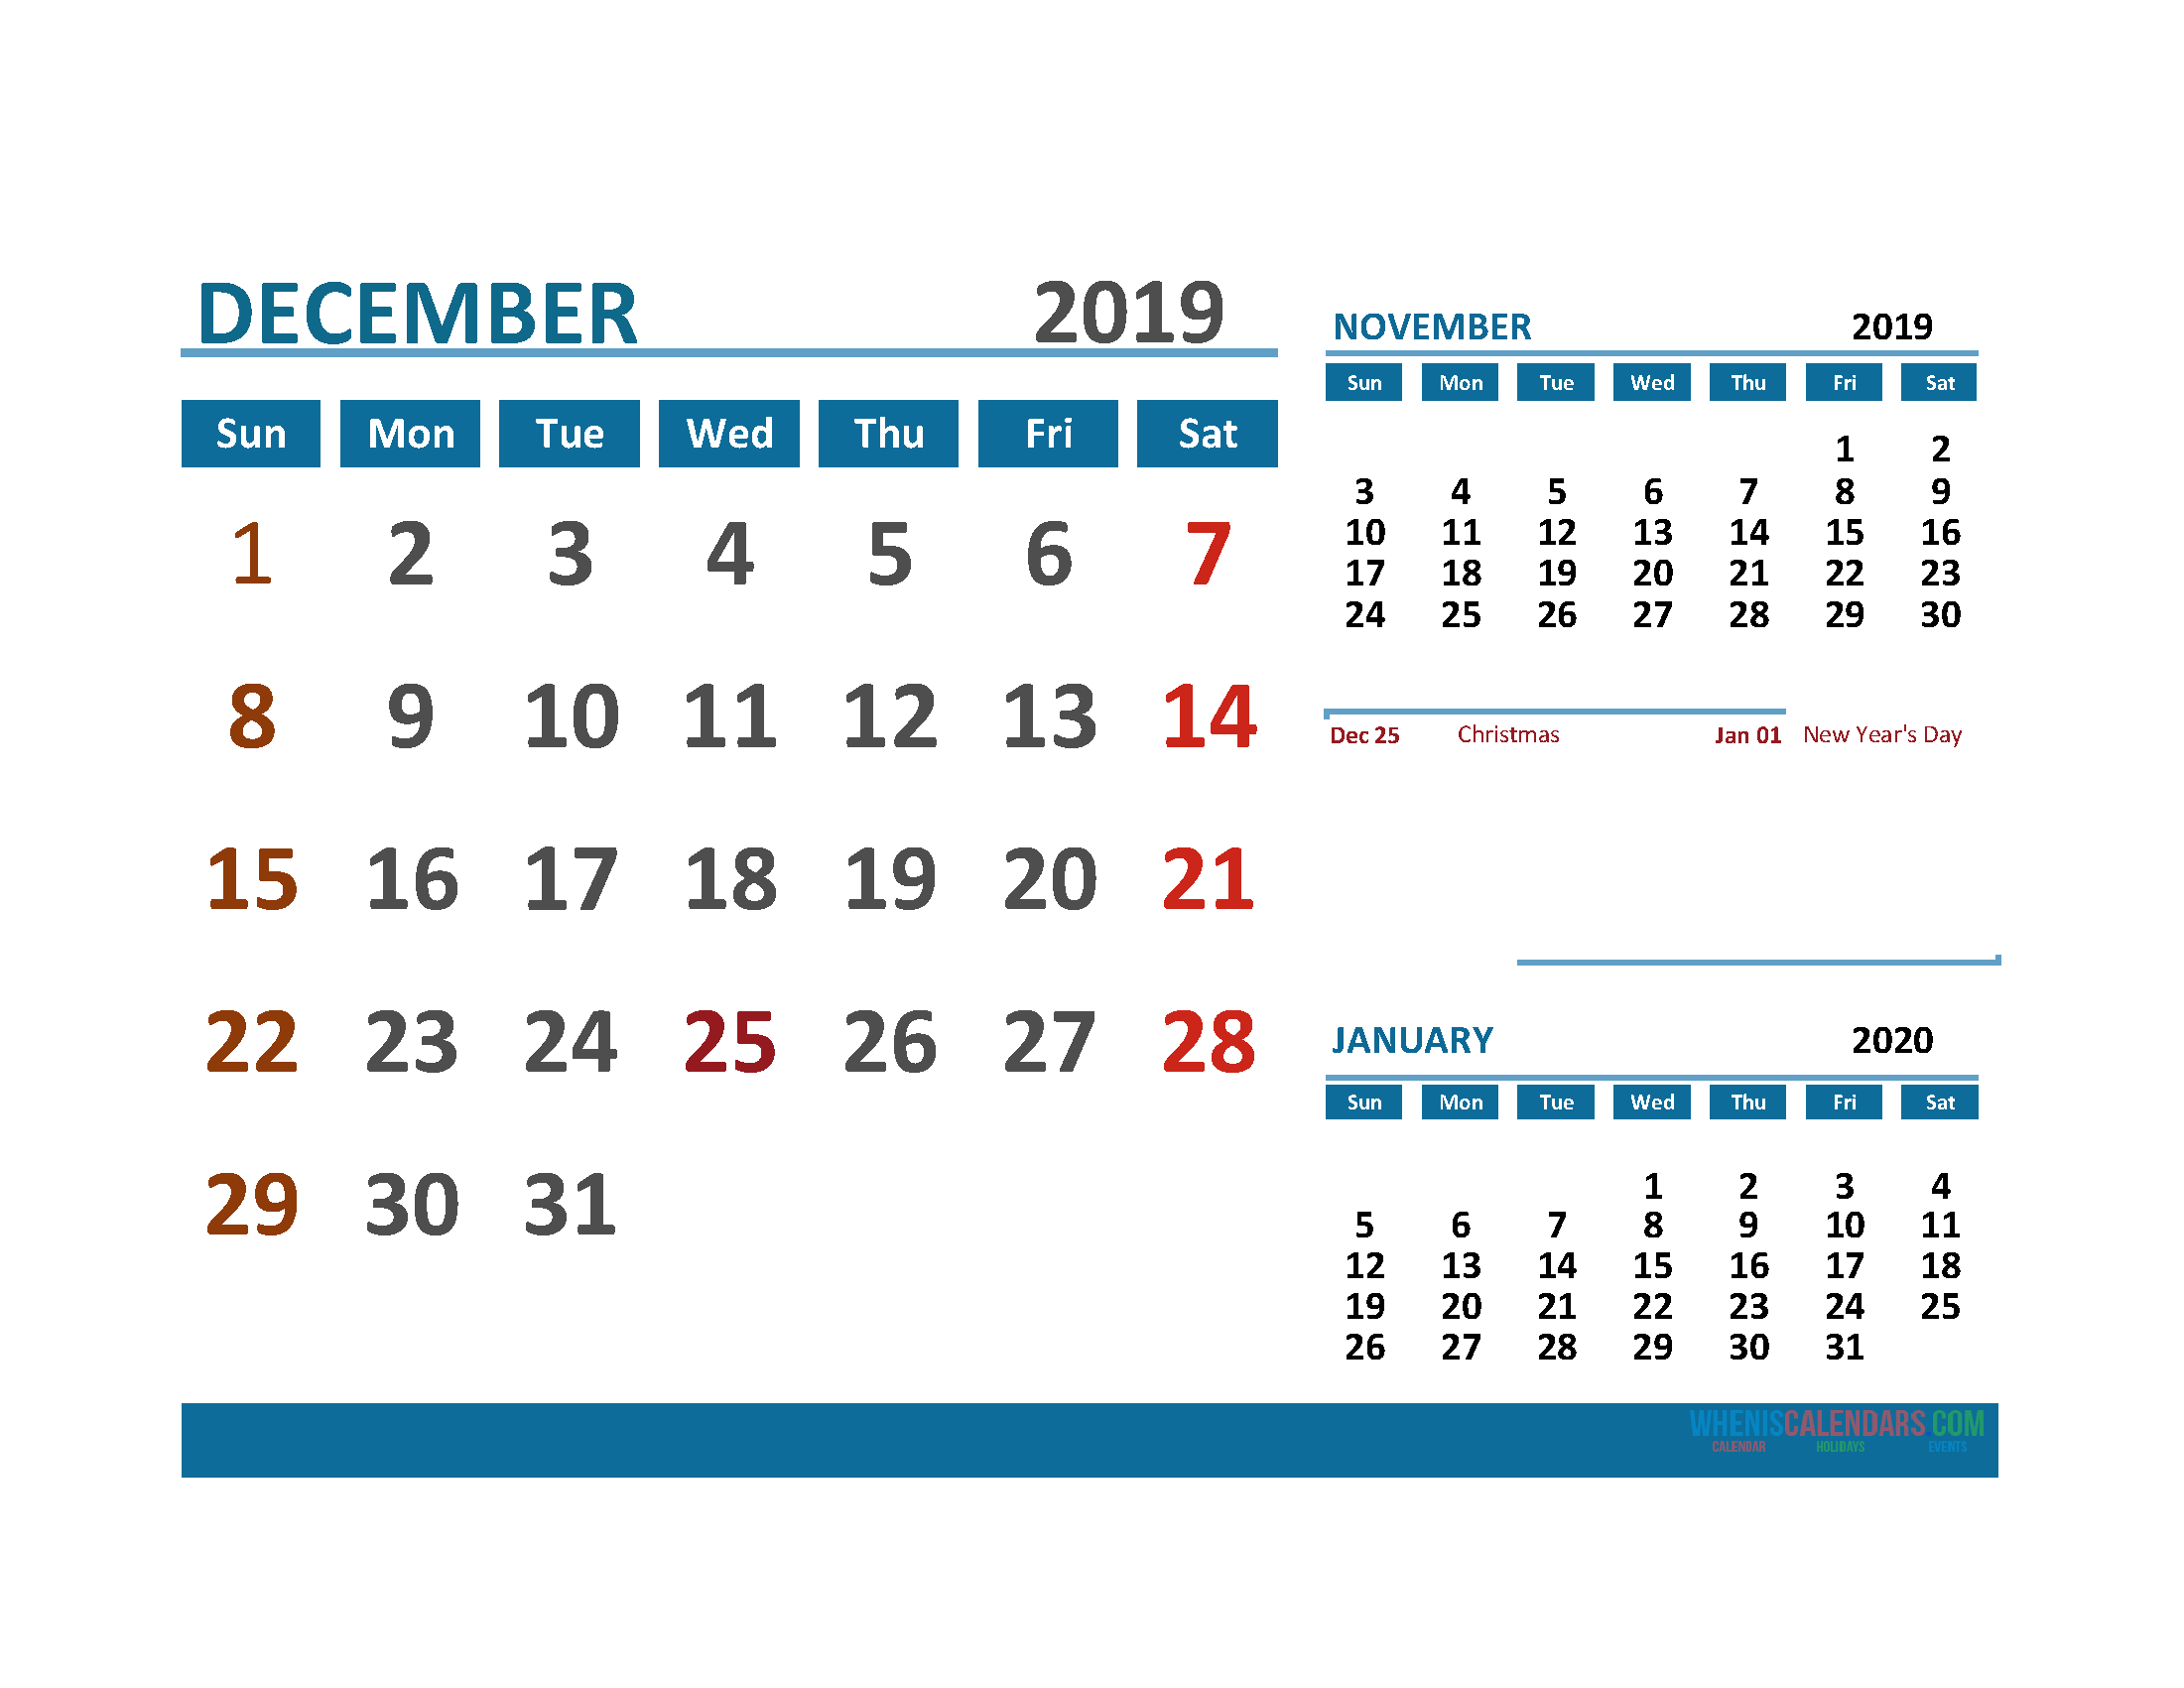 Printable Calendar December 2019 with Holidays 1 Month on 1 Page. November December 2019 and January 2020 3 Month Calendar